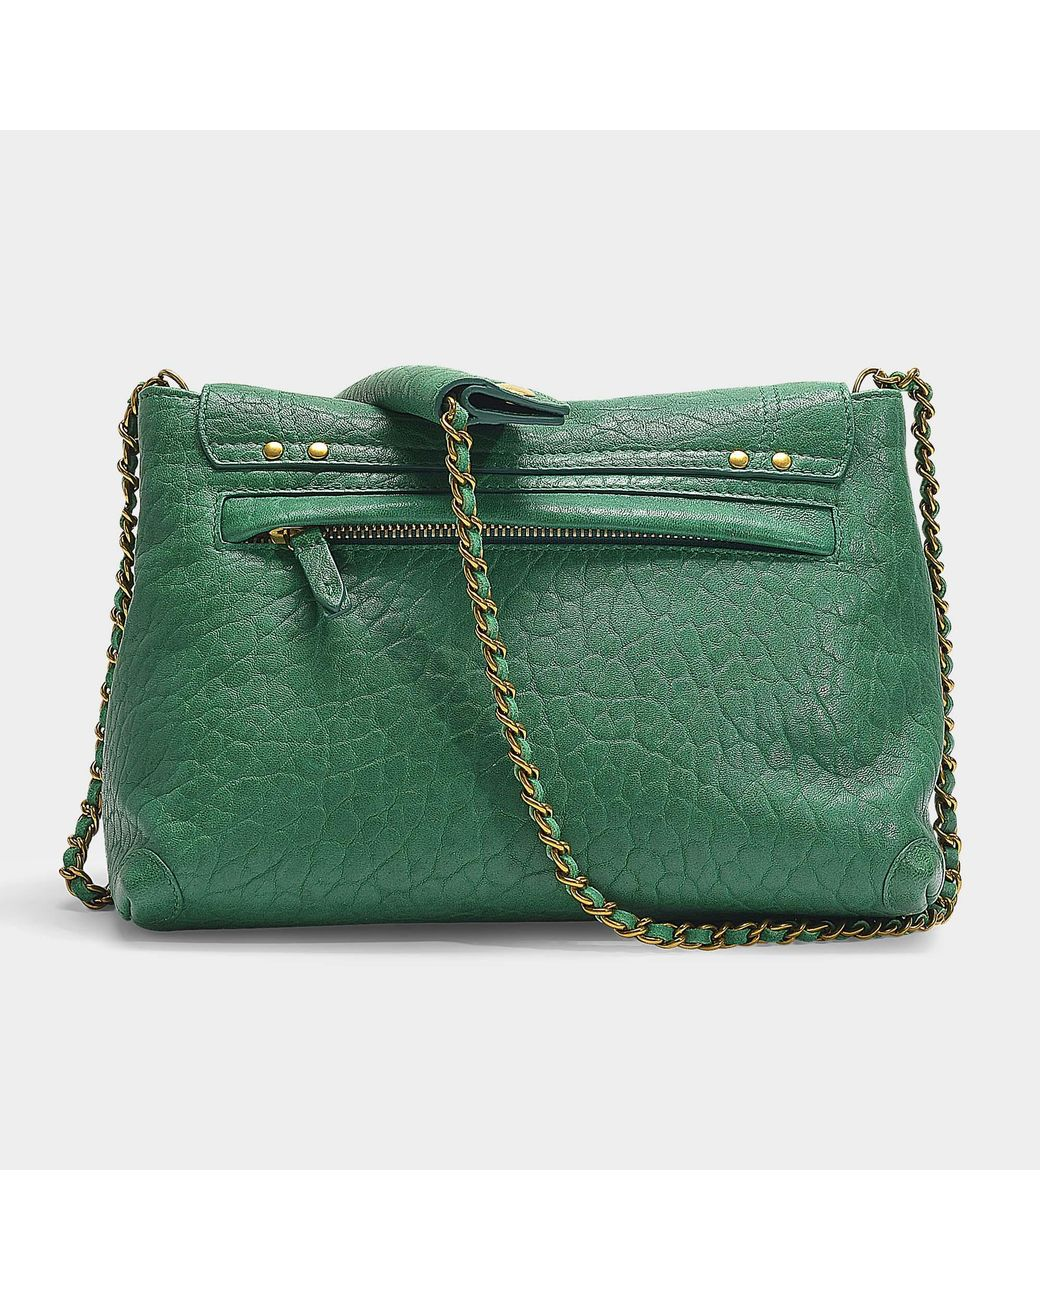 bc4ad36595a8 Jérôme Dreyfuss Lulu M Bag In Green Bubble Lambskin in Green - Save 1% -  Lyst